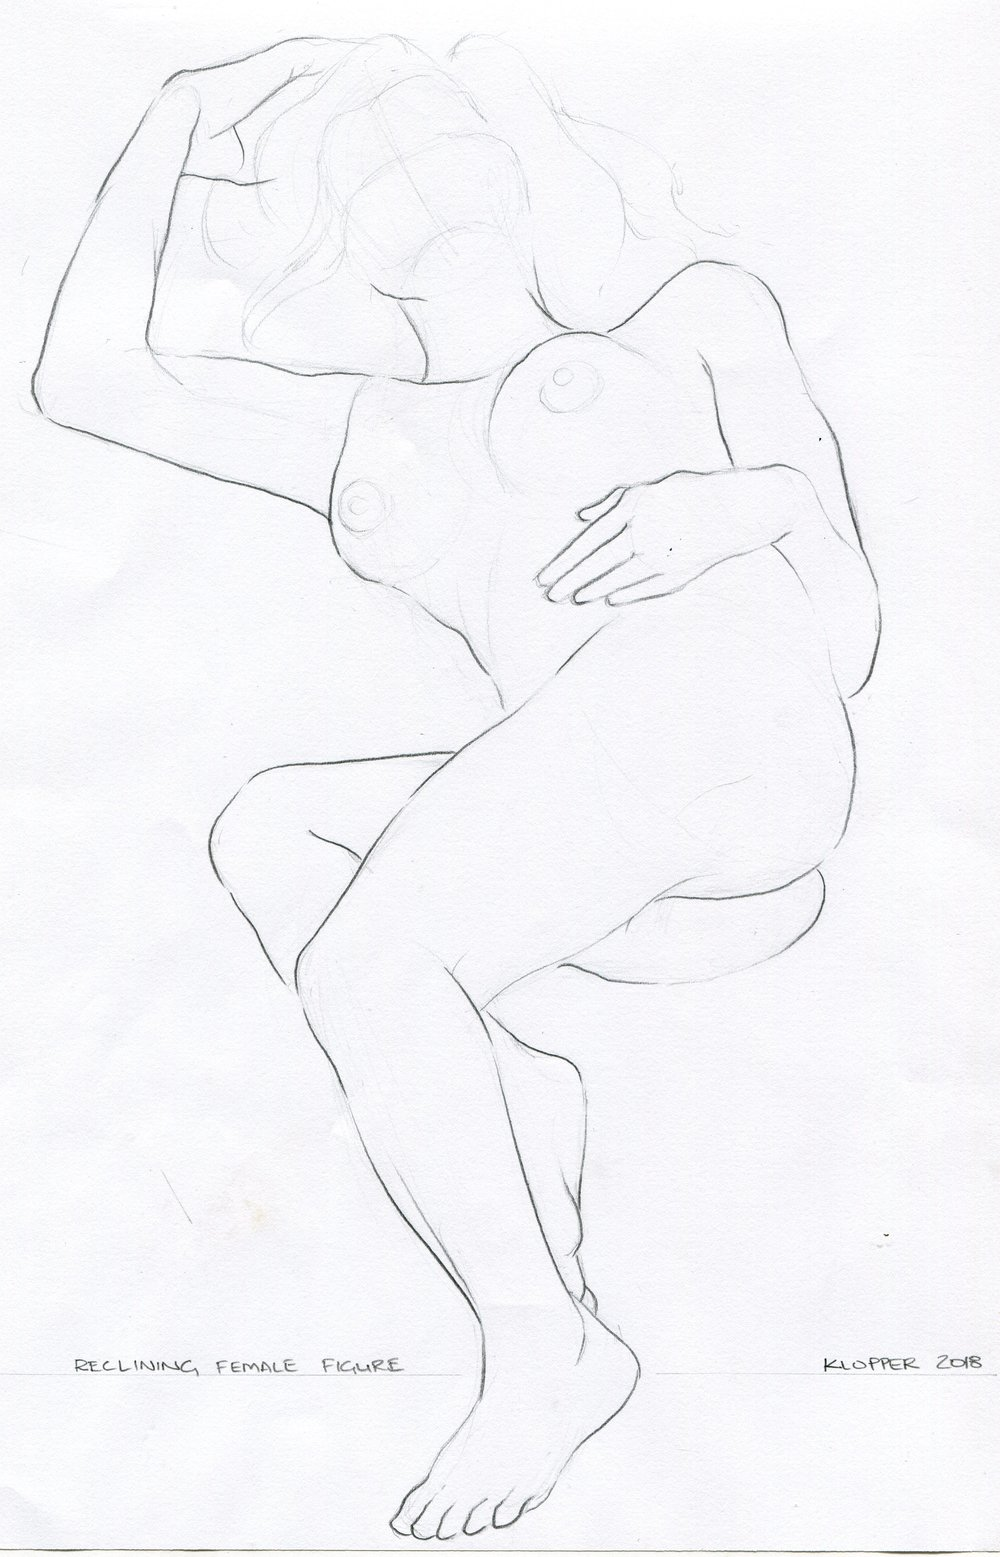 33B  Rory Klopper  Reclining female figure  pencil on paper